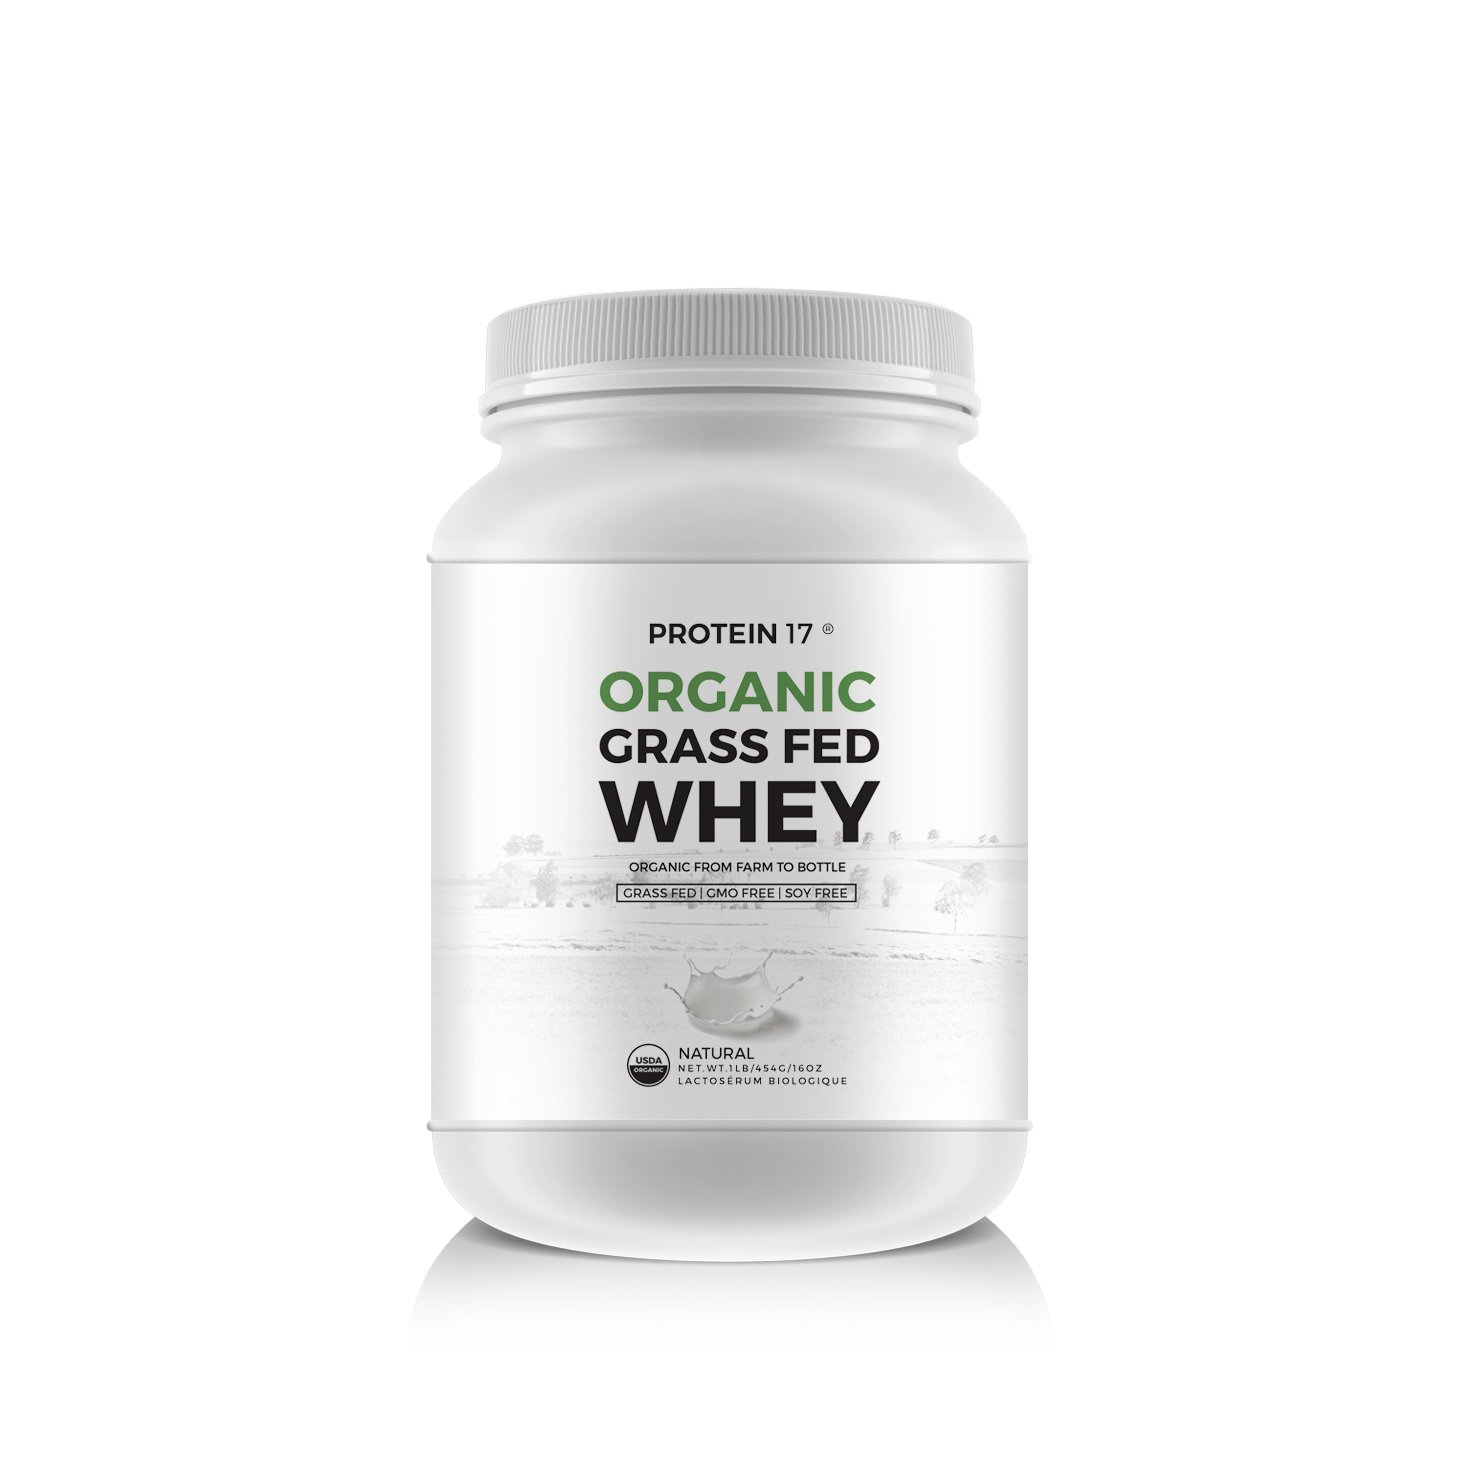 New and Unique - The Ultimate Organic, Grass-Fed Whey Protein, Delicious, 1lb/16oz/454g - Protein 17® - Excellent Value by Weight by Protein 17